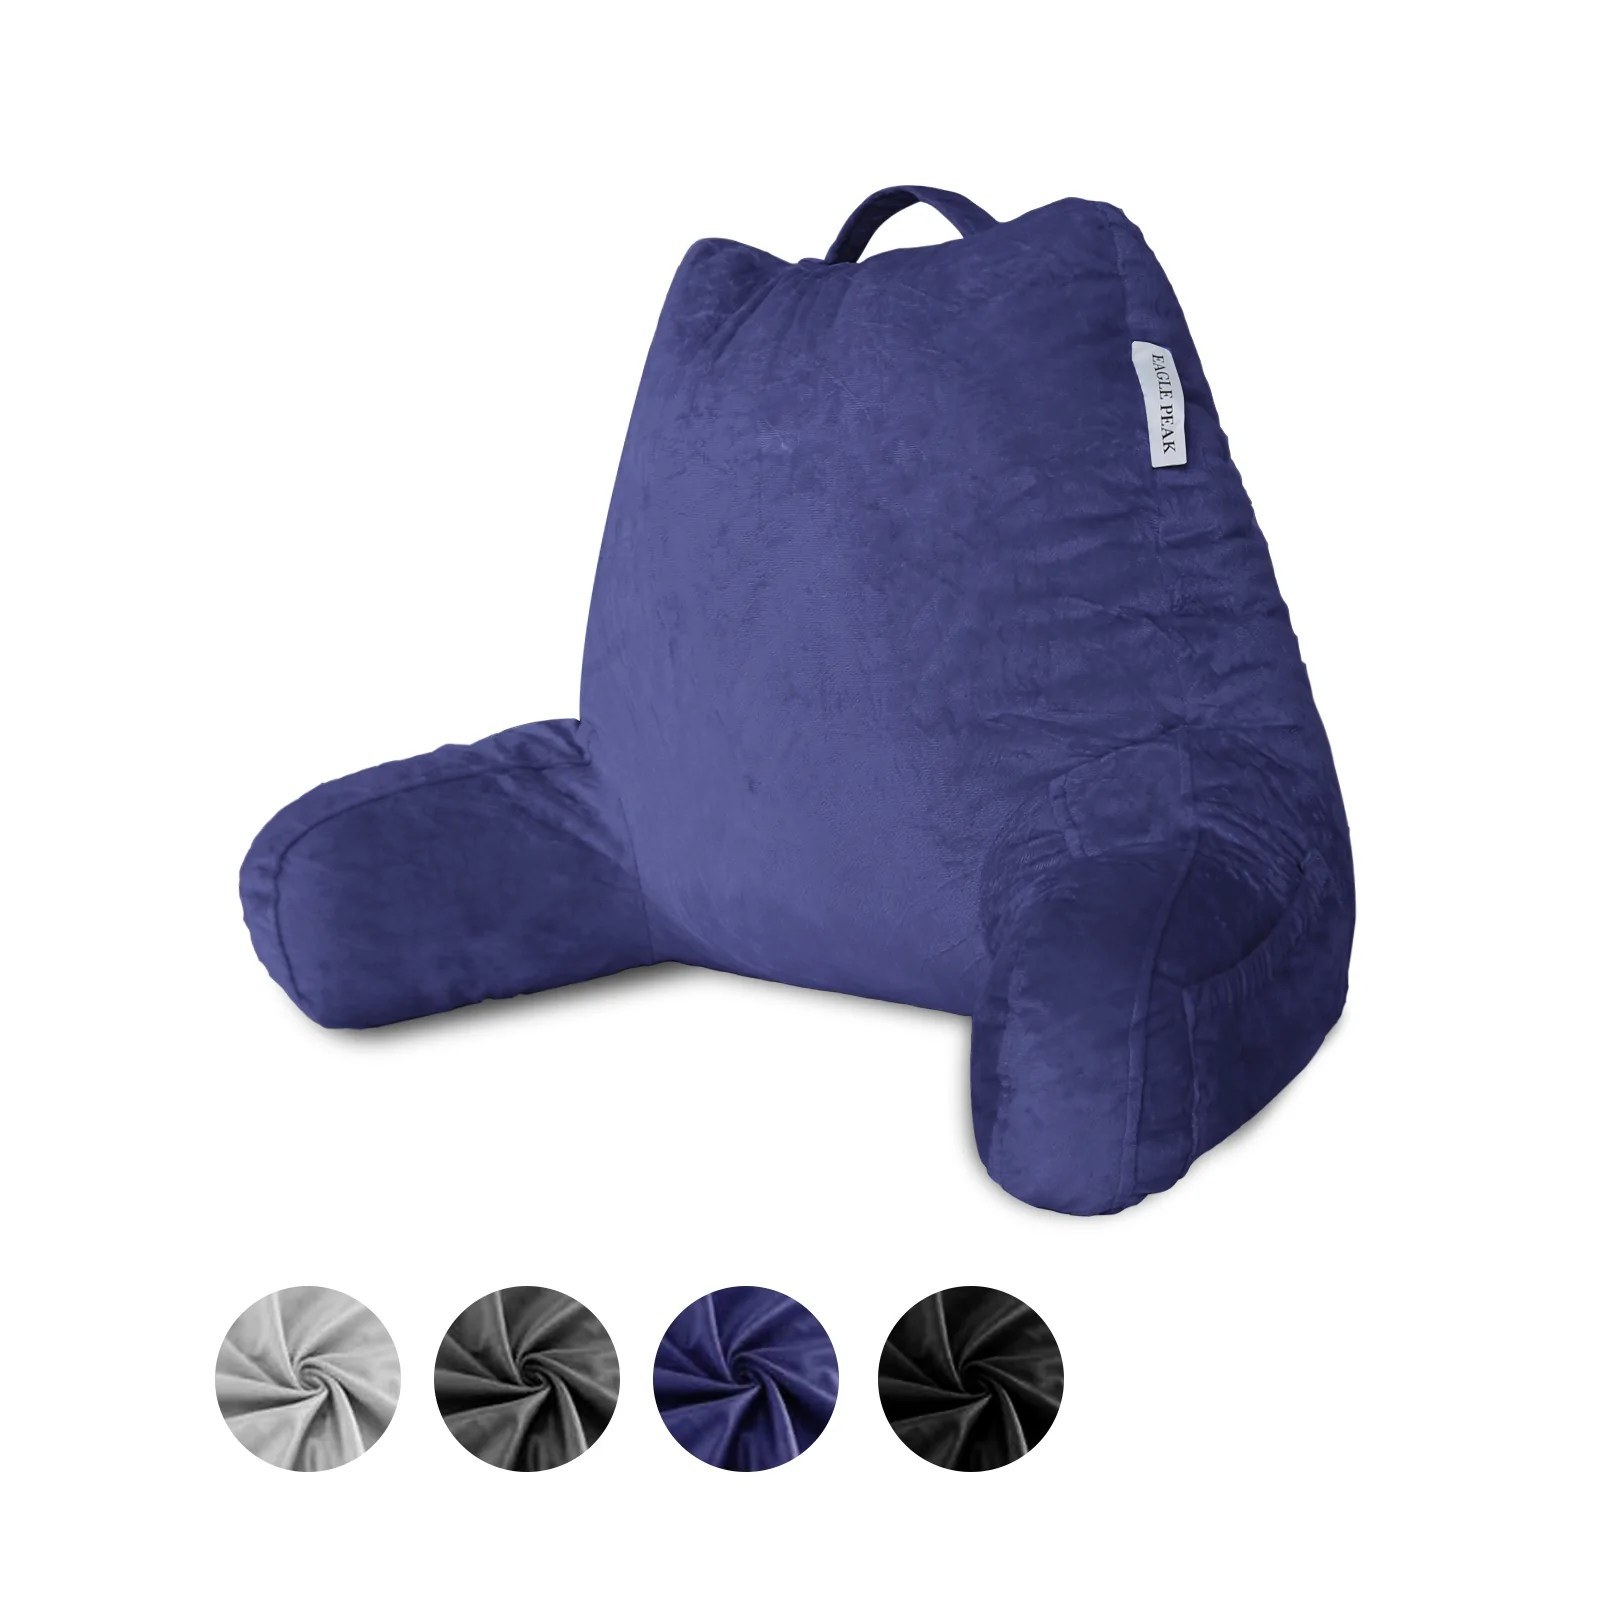 https www eaglepeak com products eagle peak medium shredded memory foam reading pillow bed rest pillow with arms and pockets removable cover back support cushion for adults teens while reading watching tv relaxing